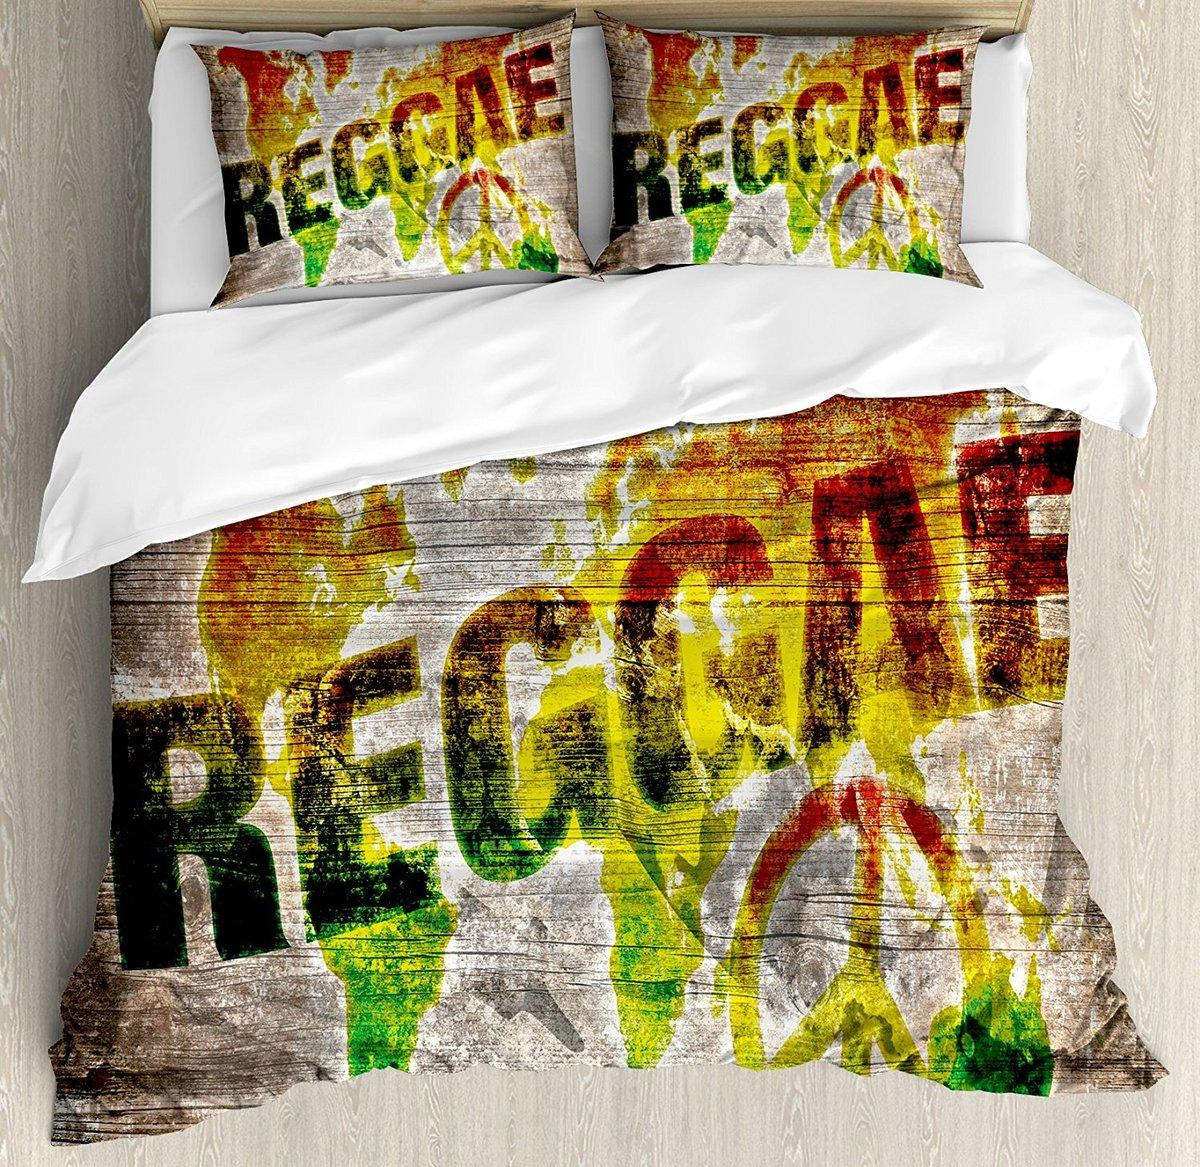 World Map Sheet Set.Rasta Duvet Cover Set World Map On Plaques With Reggae Lettering And